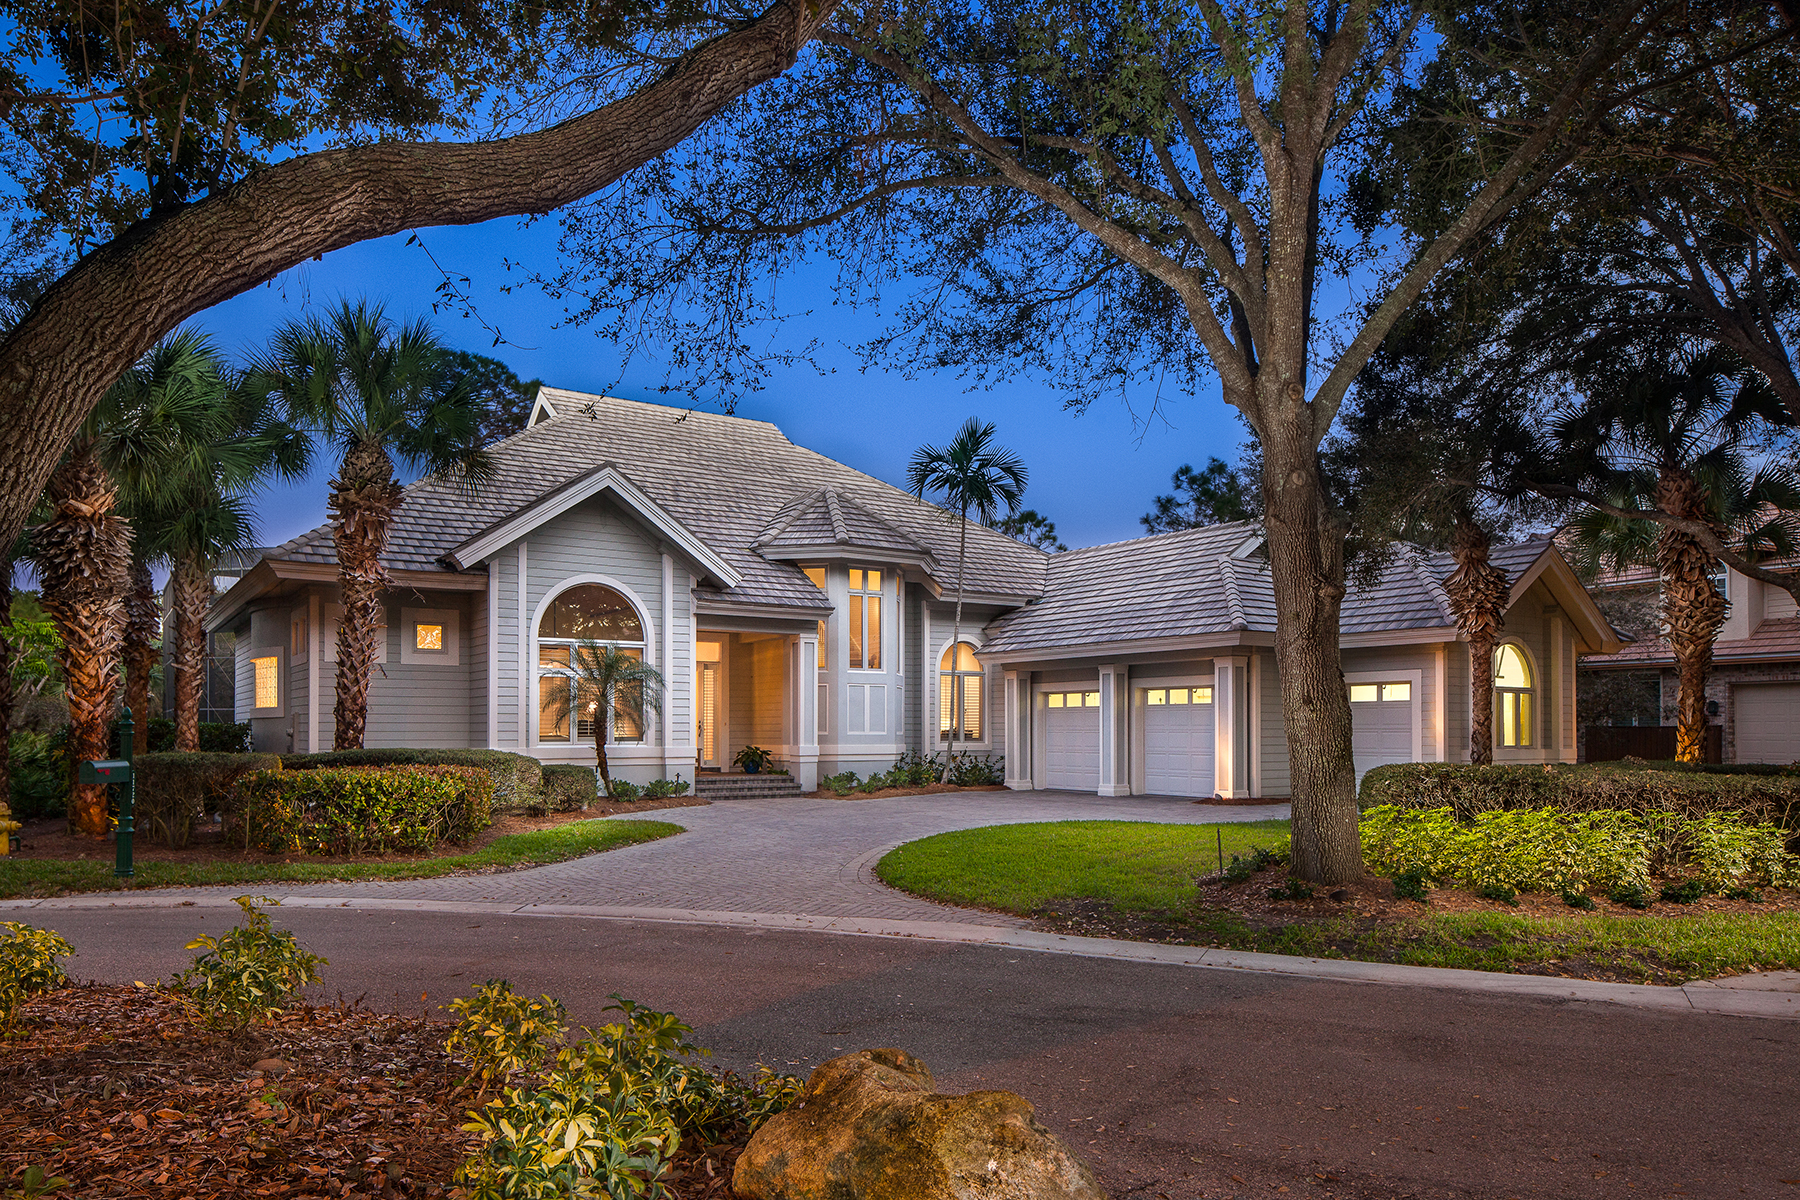 Single Family Home for Sale at COLLIERS RESERVE 11720 Walton Pl Naples, Florida, 34110 United States